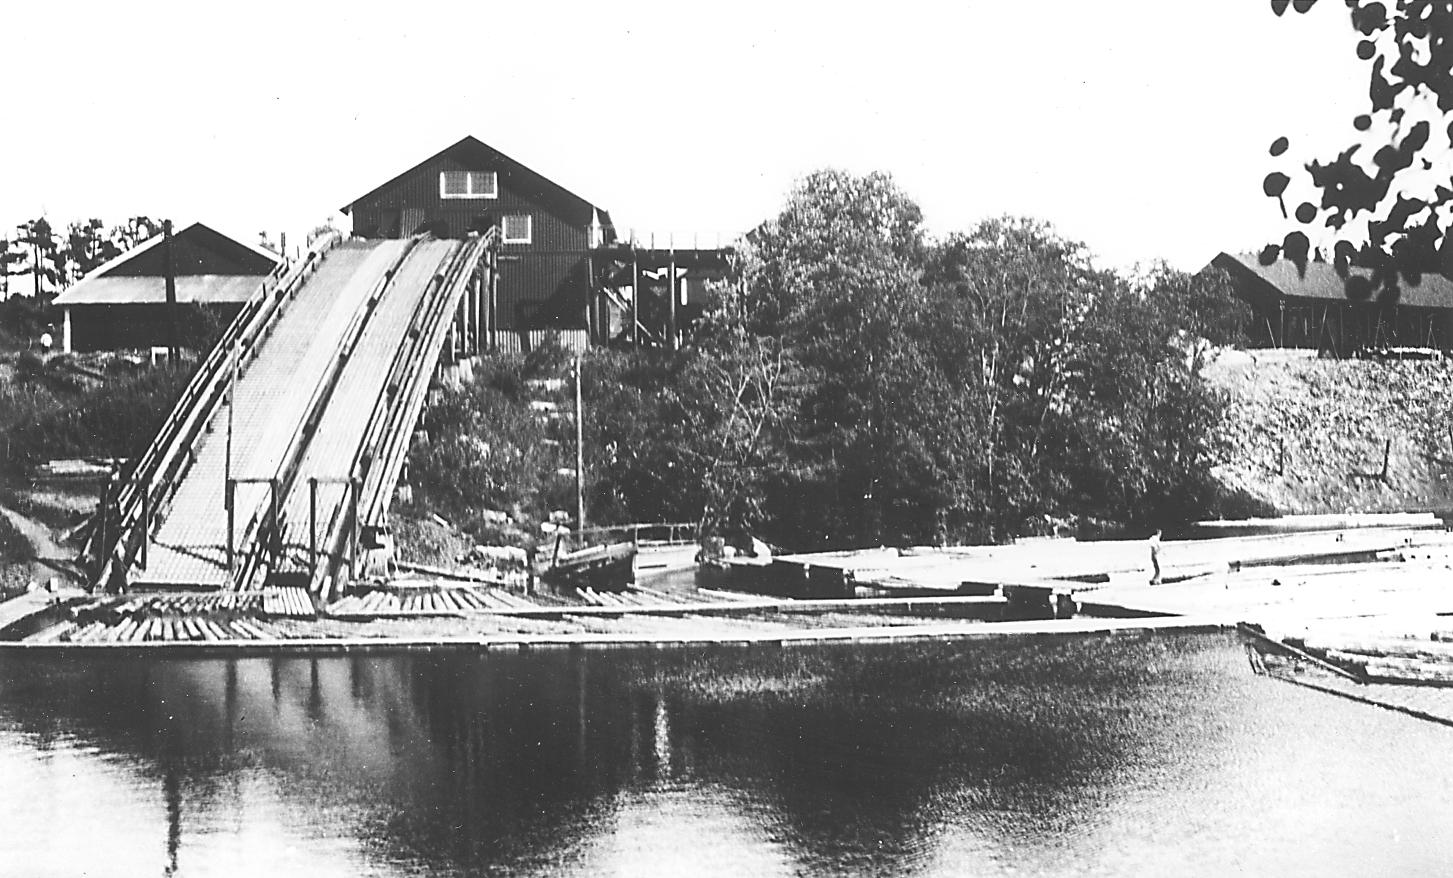 The sawmill at Brekke, shortly before production ceased.